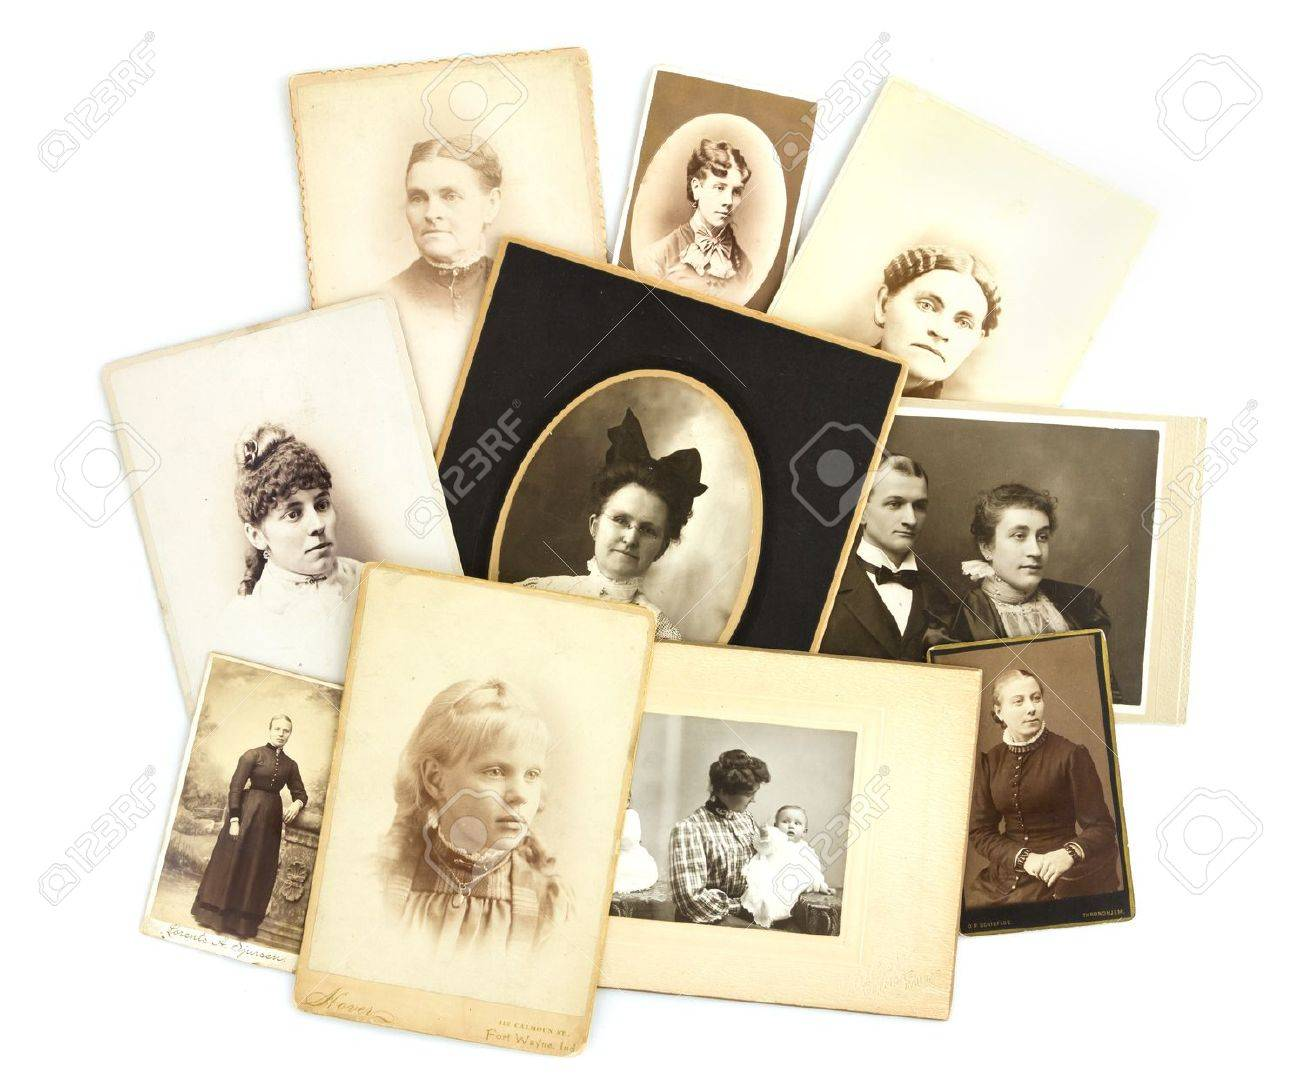 Antique Photos Collage on Isolated White Background Stock Photo - 16585459